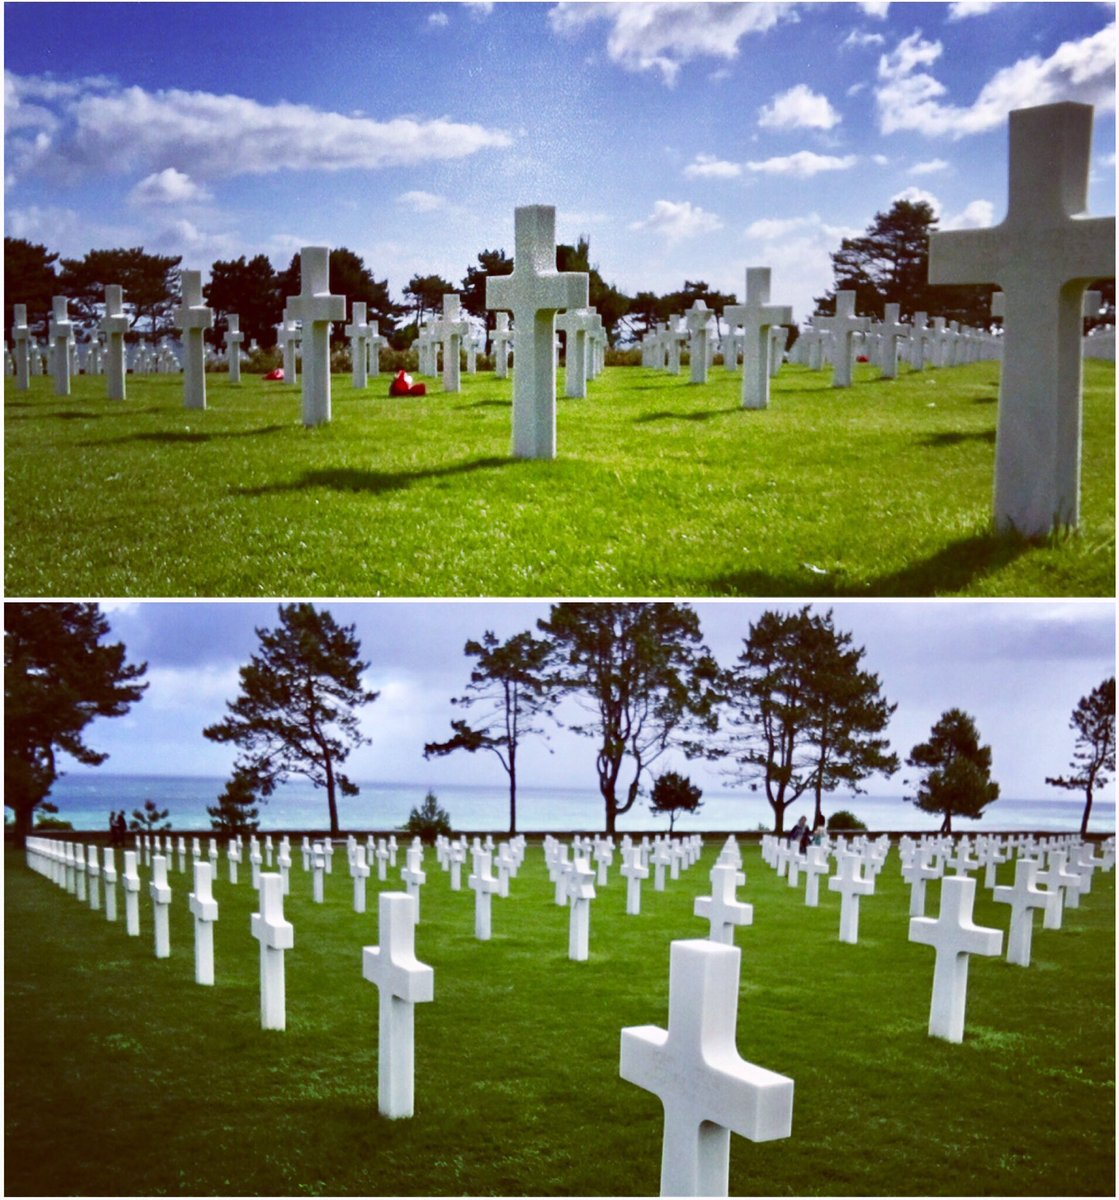 American Cemetery, Normandy. #dday Rest Easy. The world salutes you. @WWIImuseum #omahabeach https://t.co/0Pg6YsFcSi